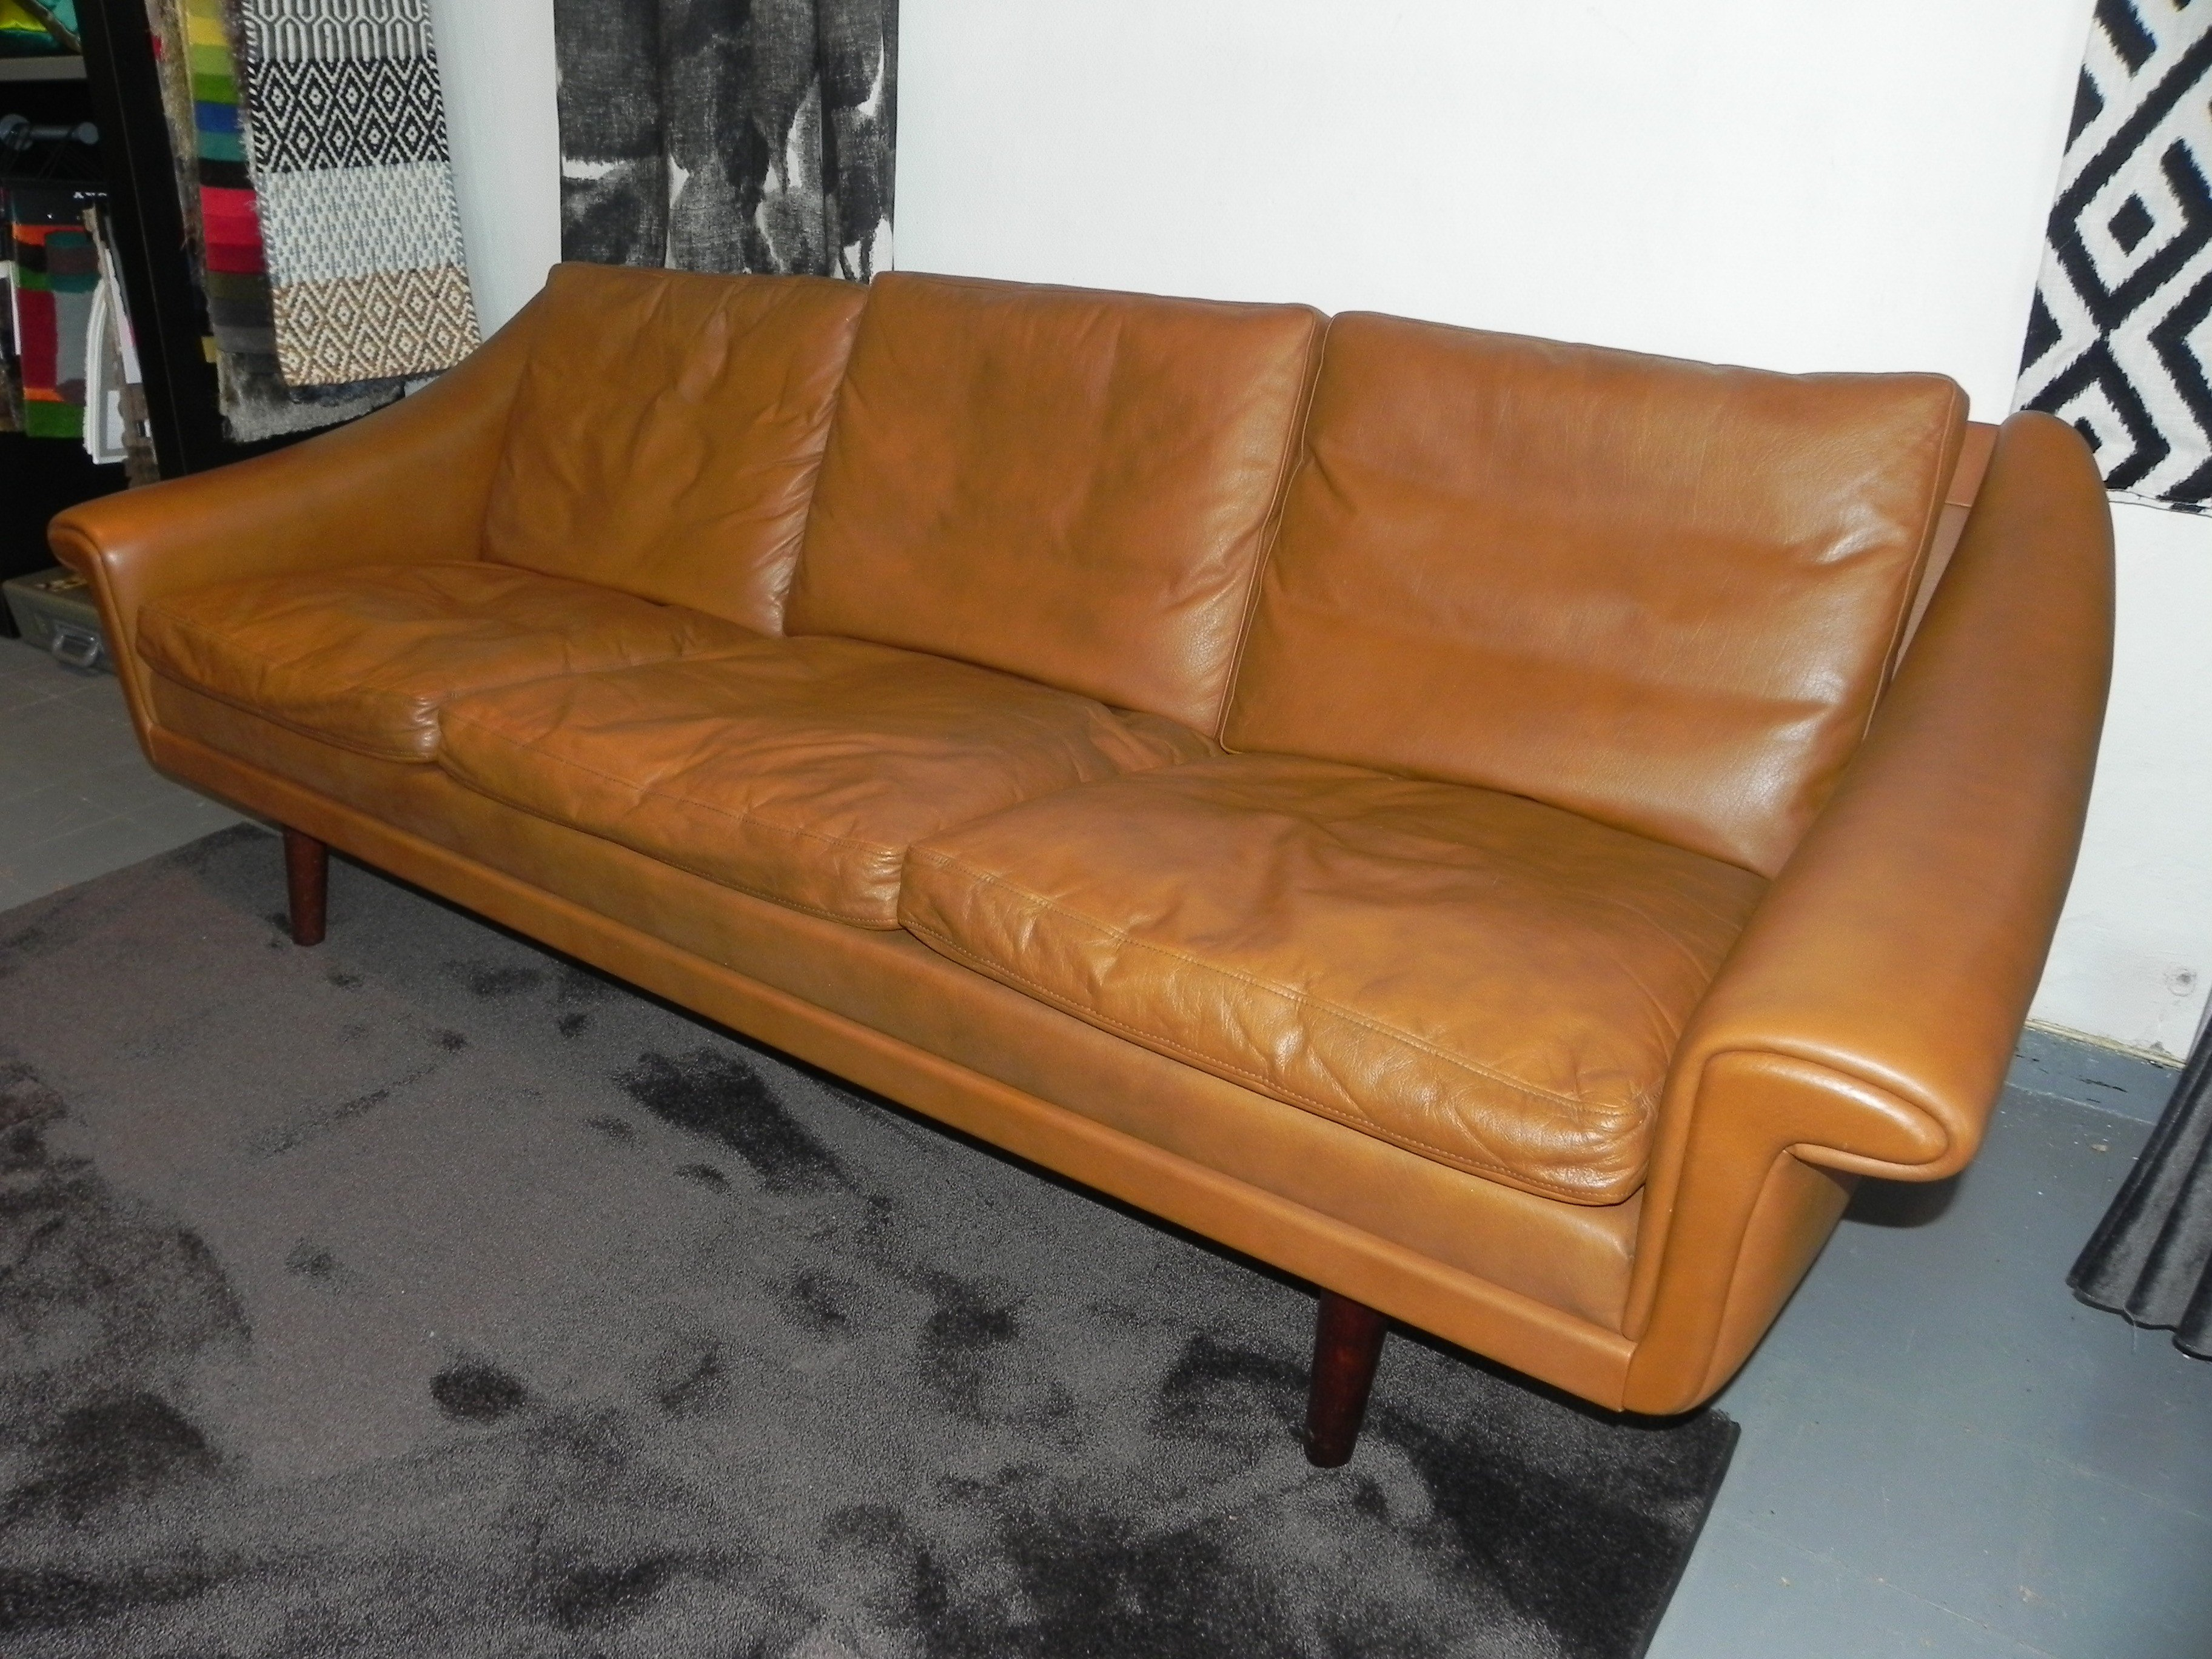 Enjoyable Scandinavian Sofa In Soft Havana Leather 1970S Machost Co Dining Chair Design Ideas Machostcouk